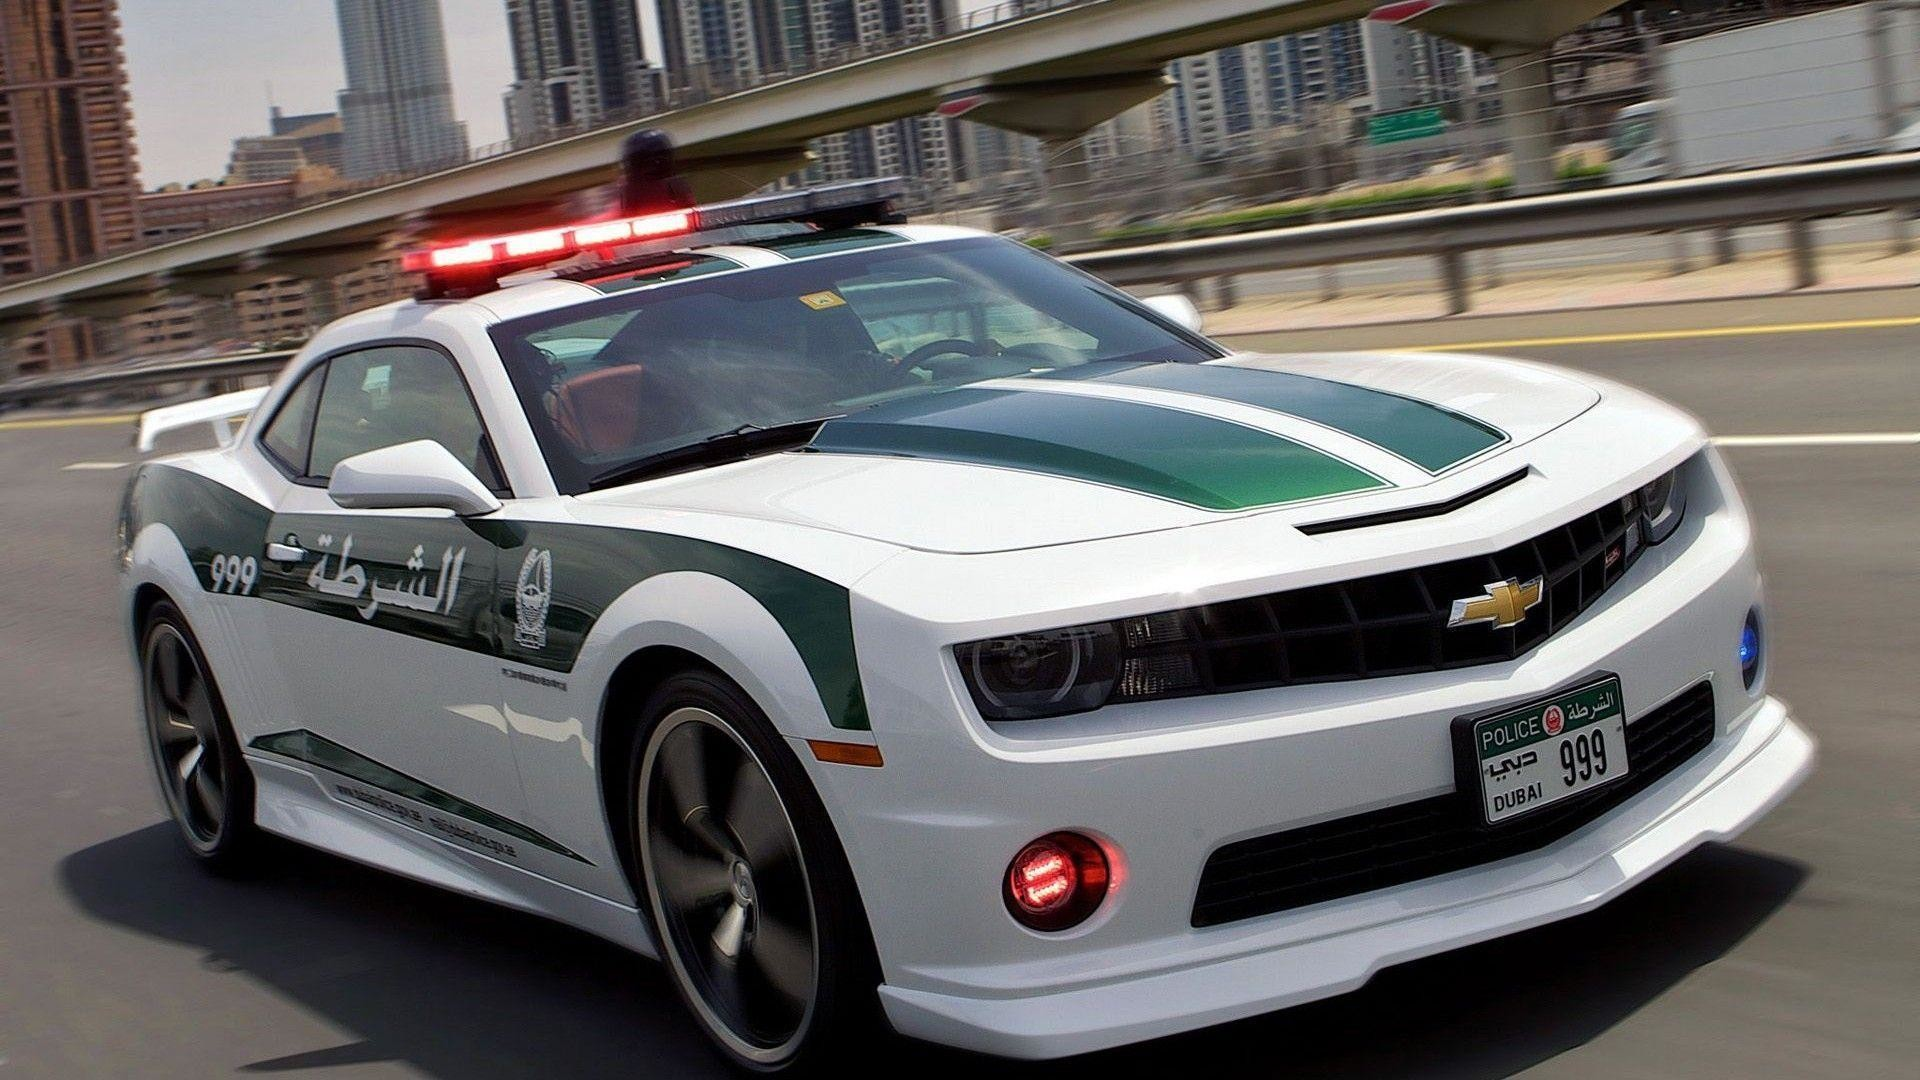 Res: 1920x1080, Police Car Wallpaper Hd #2214 Wallpaper | lookwallpapers.